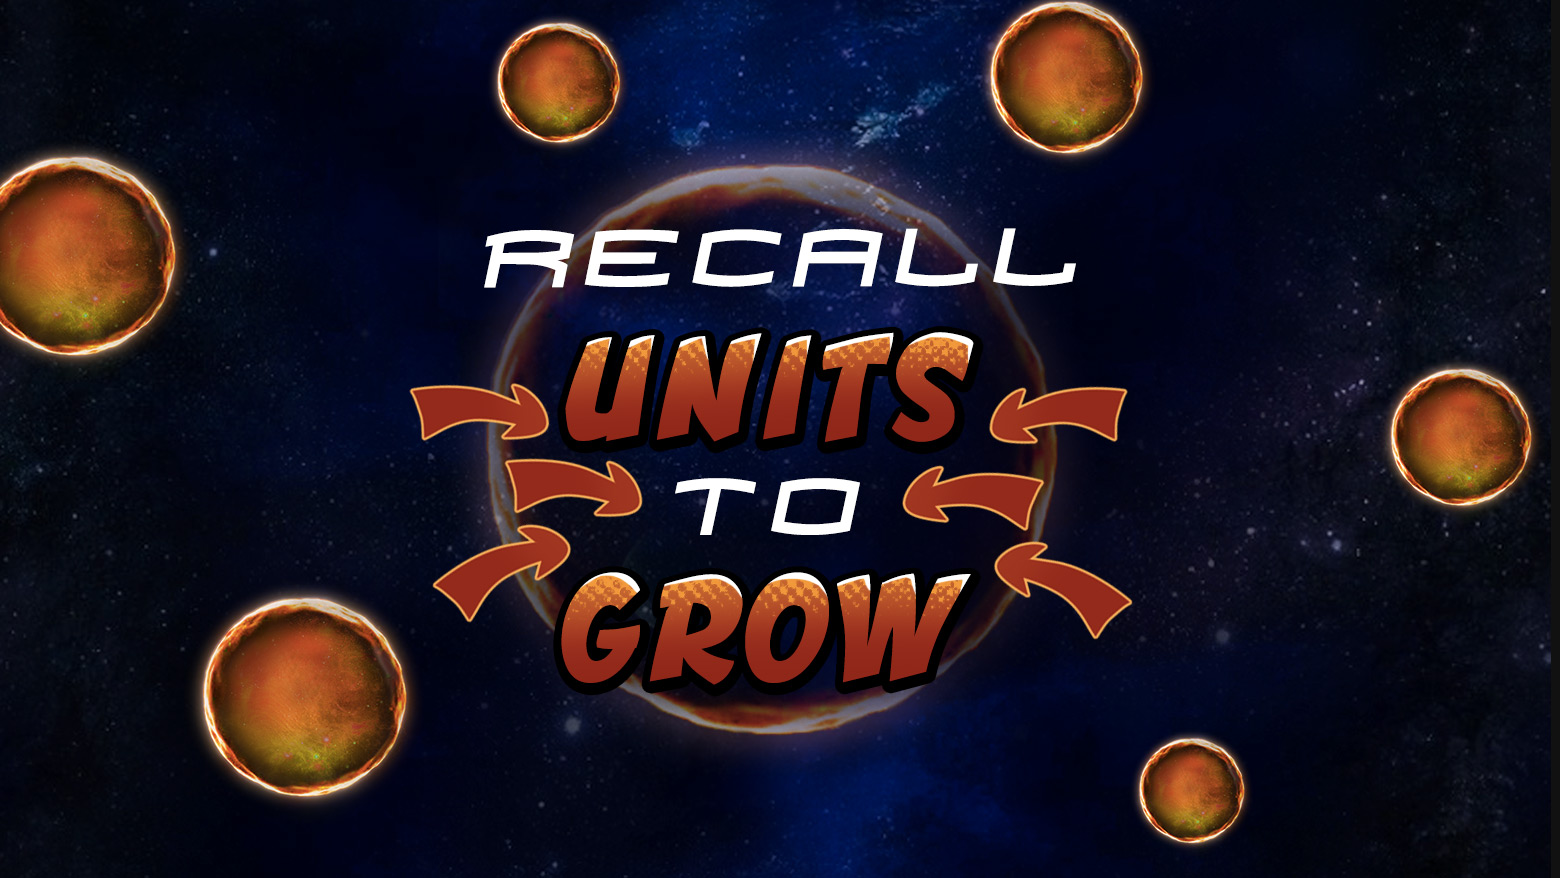 Recall units to grow